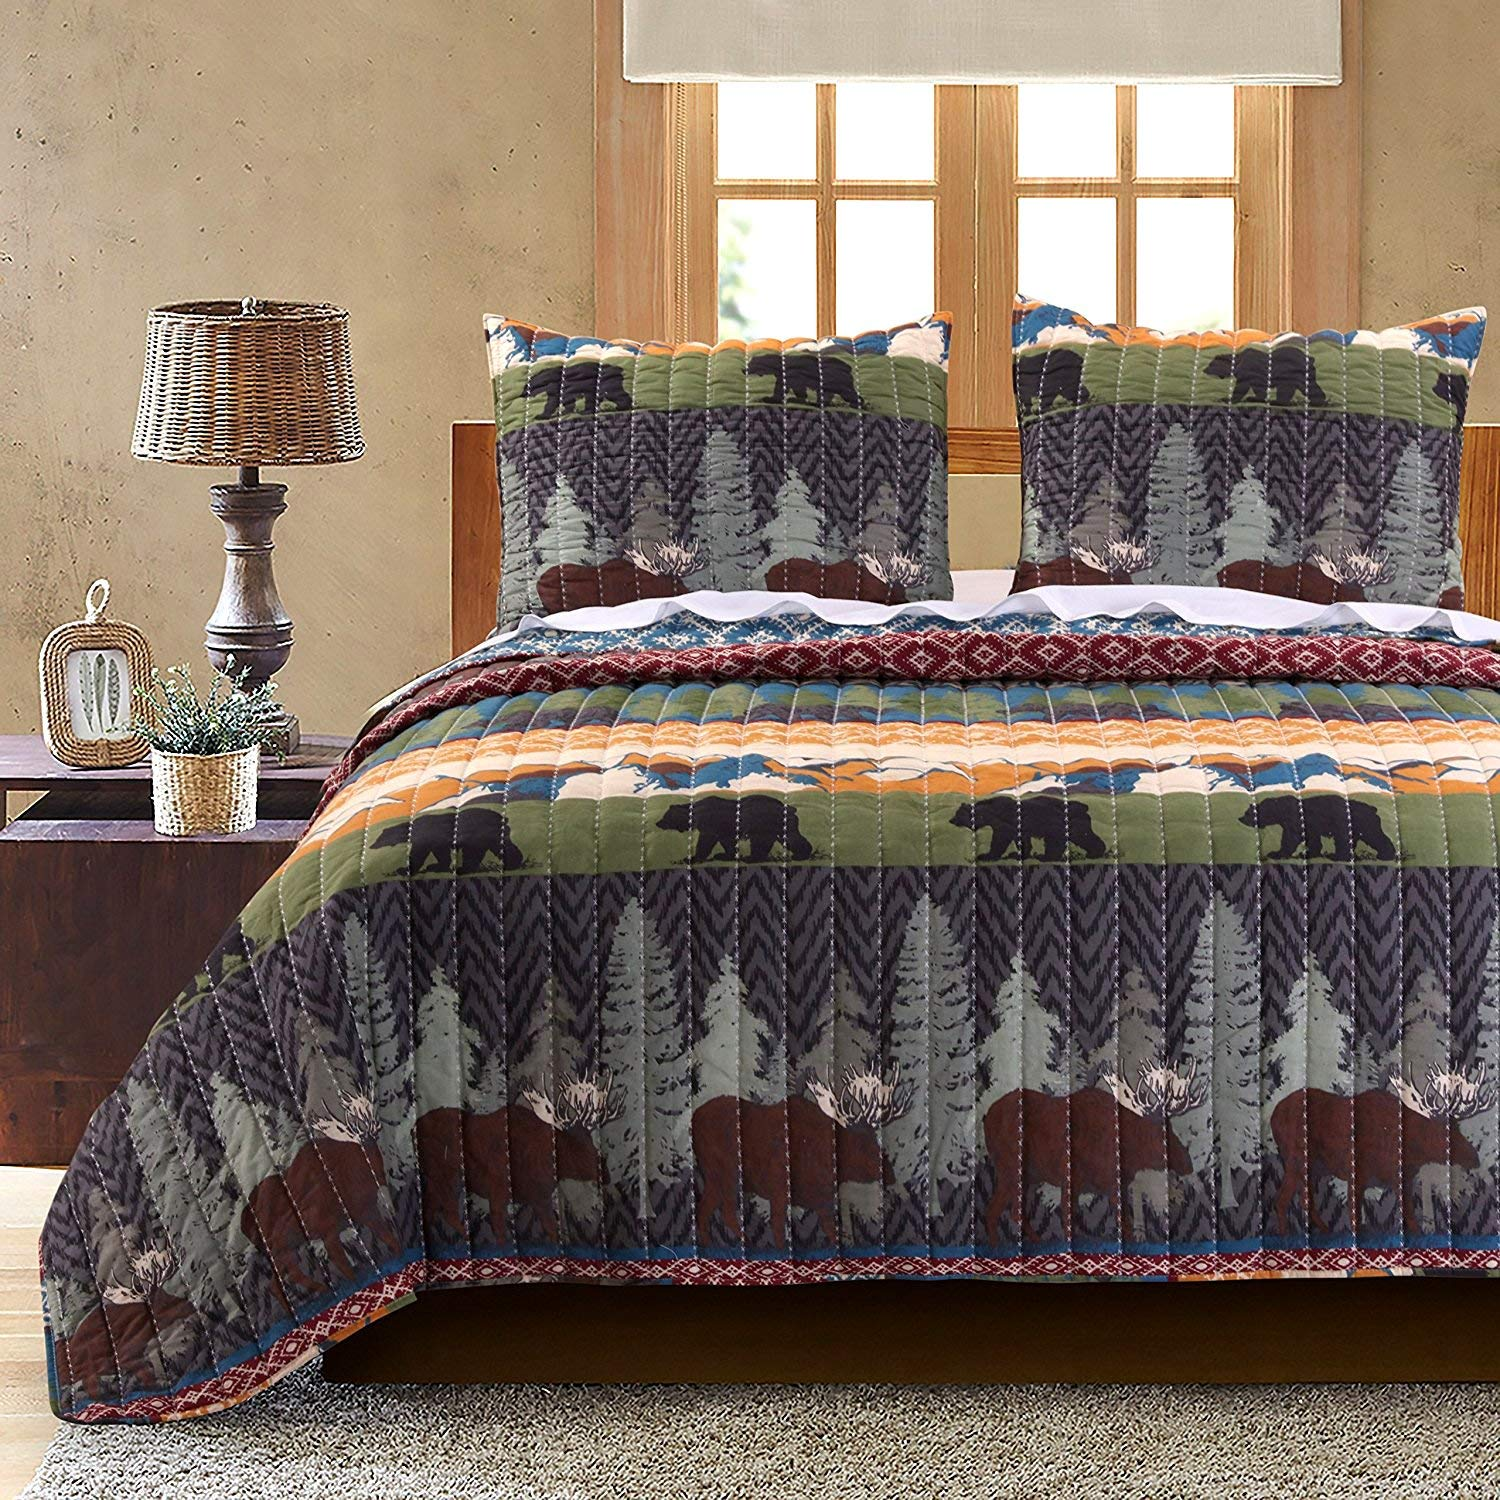 Greenland Home Black Bear Lodge Quilt Set, 2-Piece Twin Greenland Home Fashions GL-1608EMST